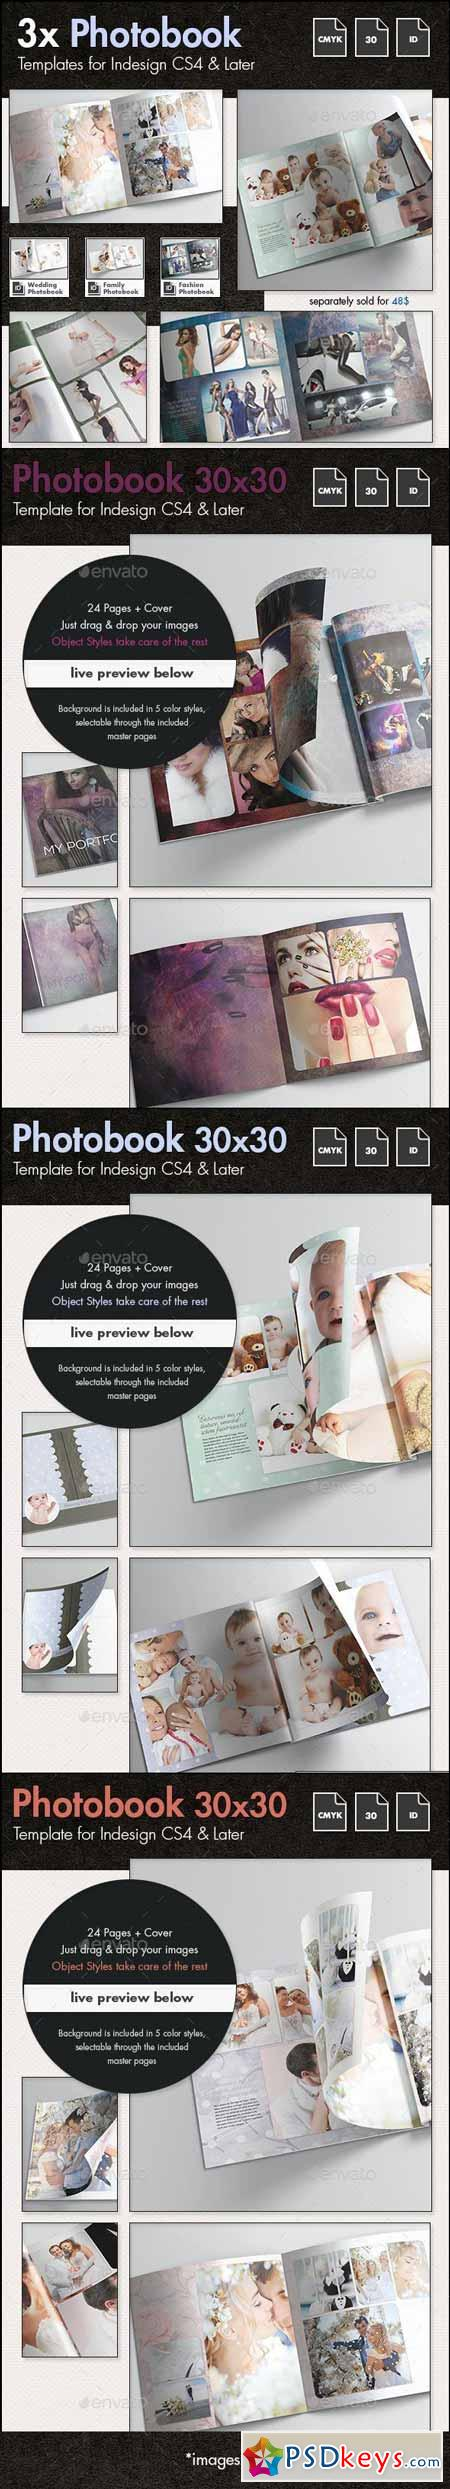 PhotoBook » page 3 » Free Download Photoshop Vector Stock image Via ...